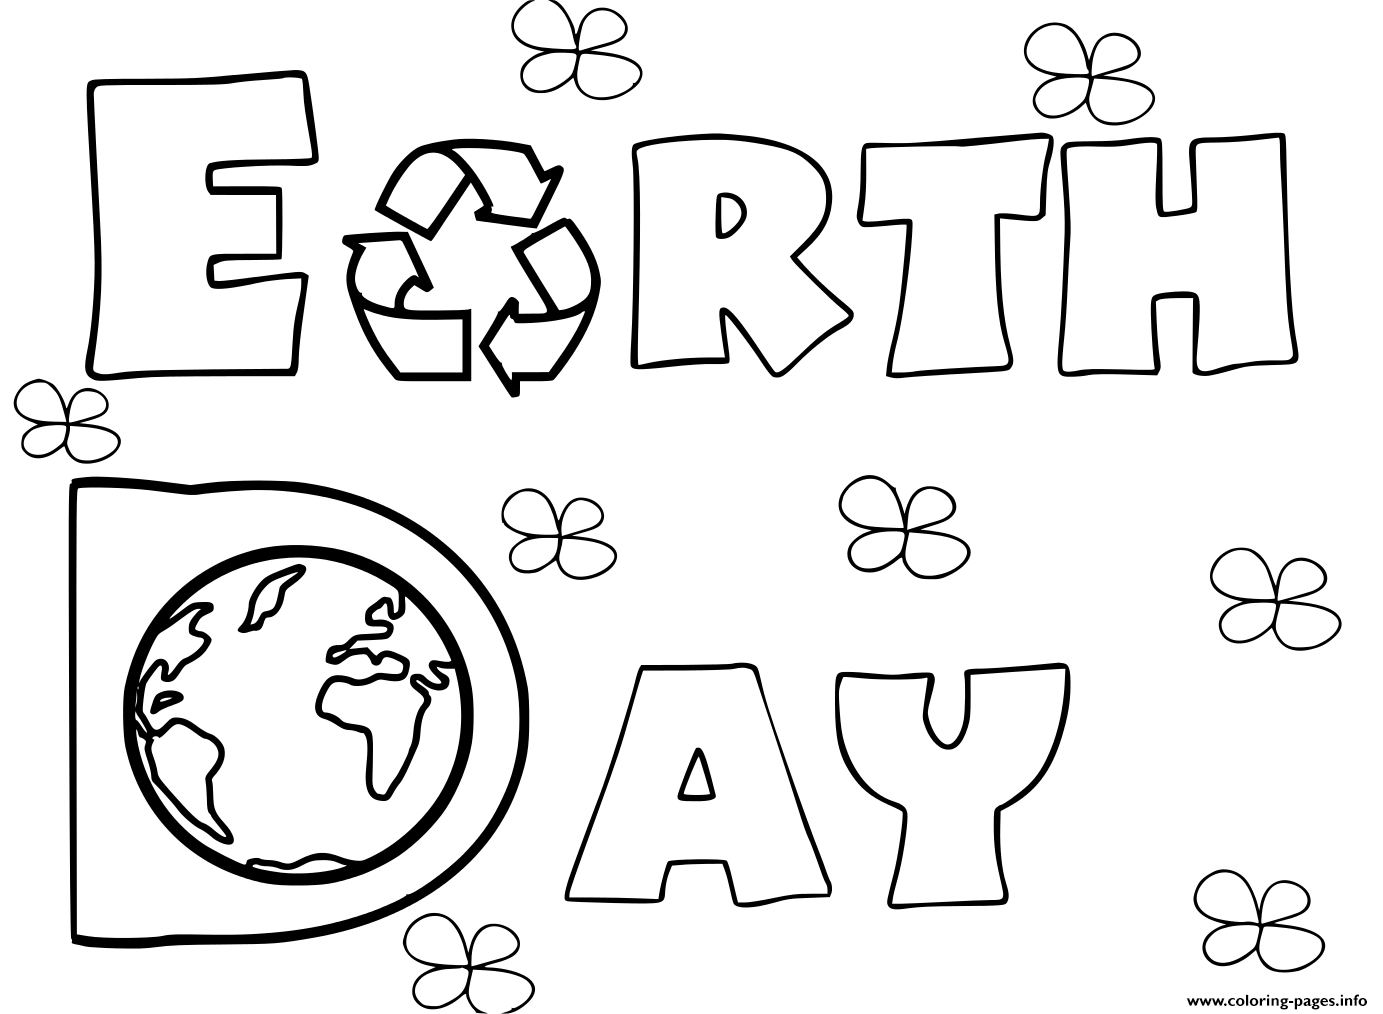 Free Printable Earth Day Worksheets For Kindergarten